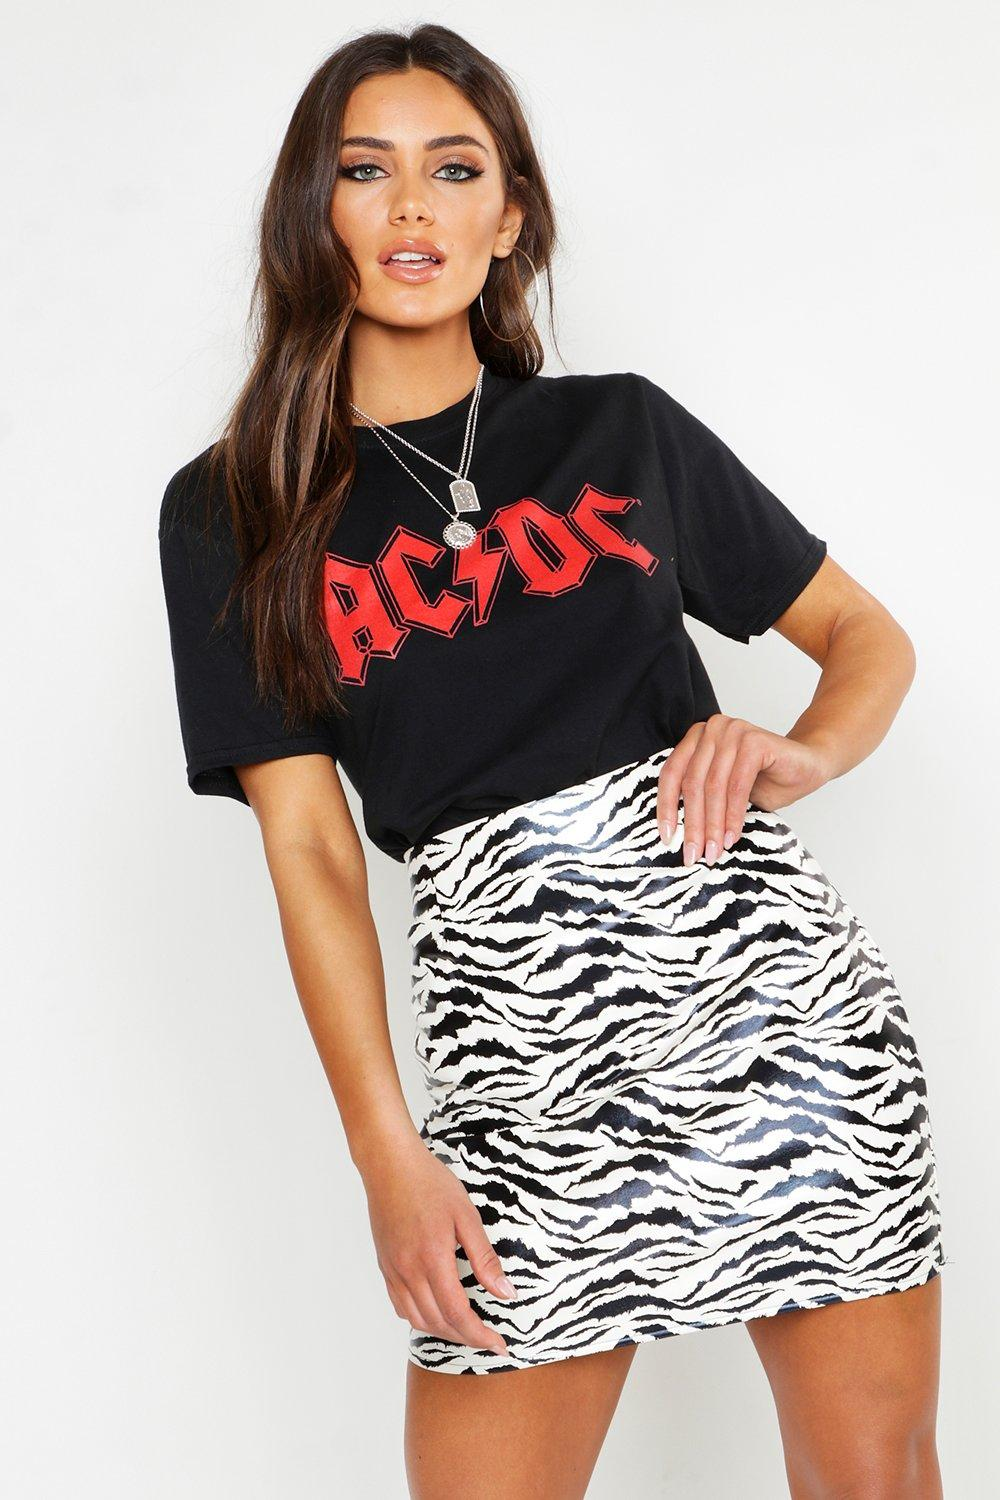 ACDC Licenced T-Shirt